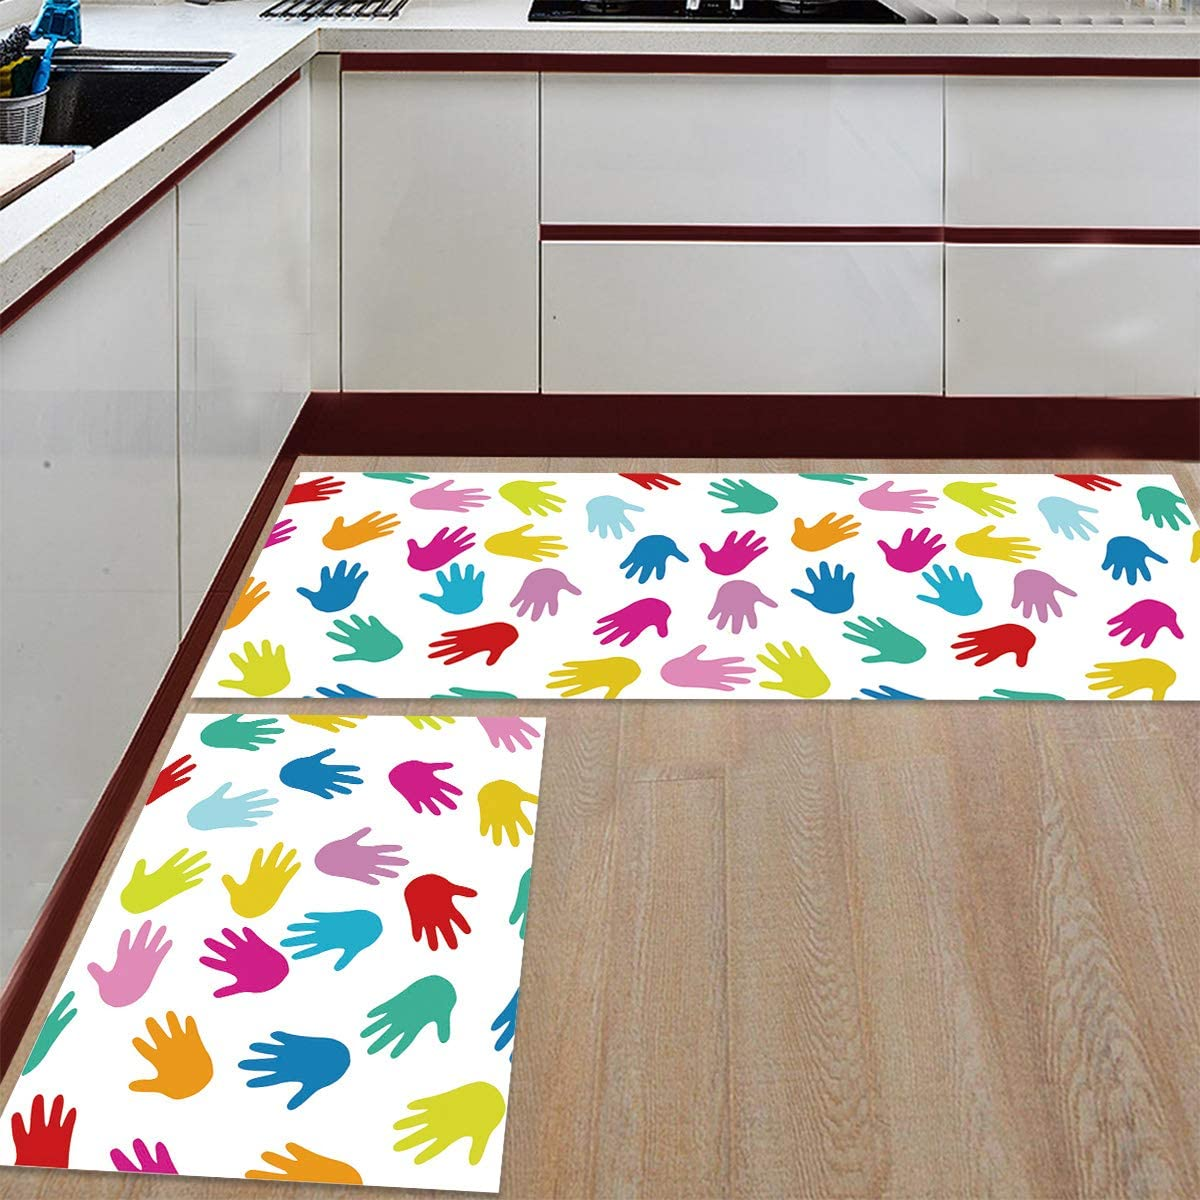 Prime store Leader Kitchen Mat and Rugs 2 Ranking TOP17 Han of Set Colorful Cartoon